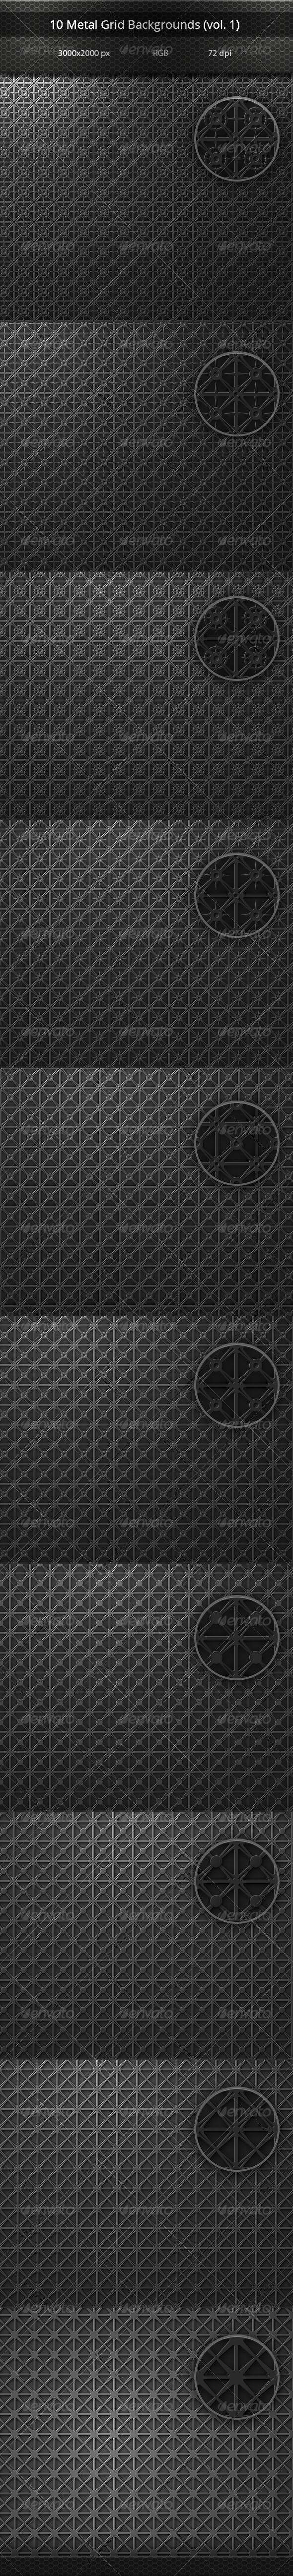 GraphicRiver Metal Grid Backgrounds vol 1 8103179